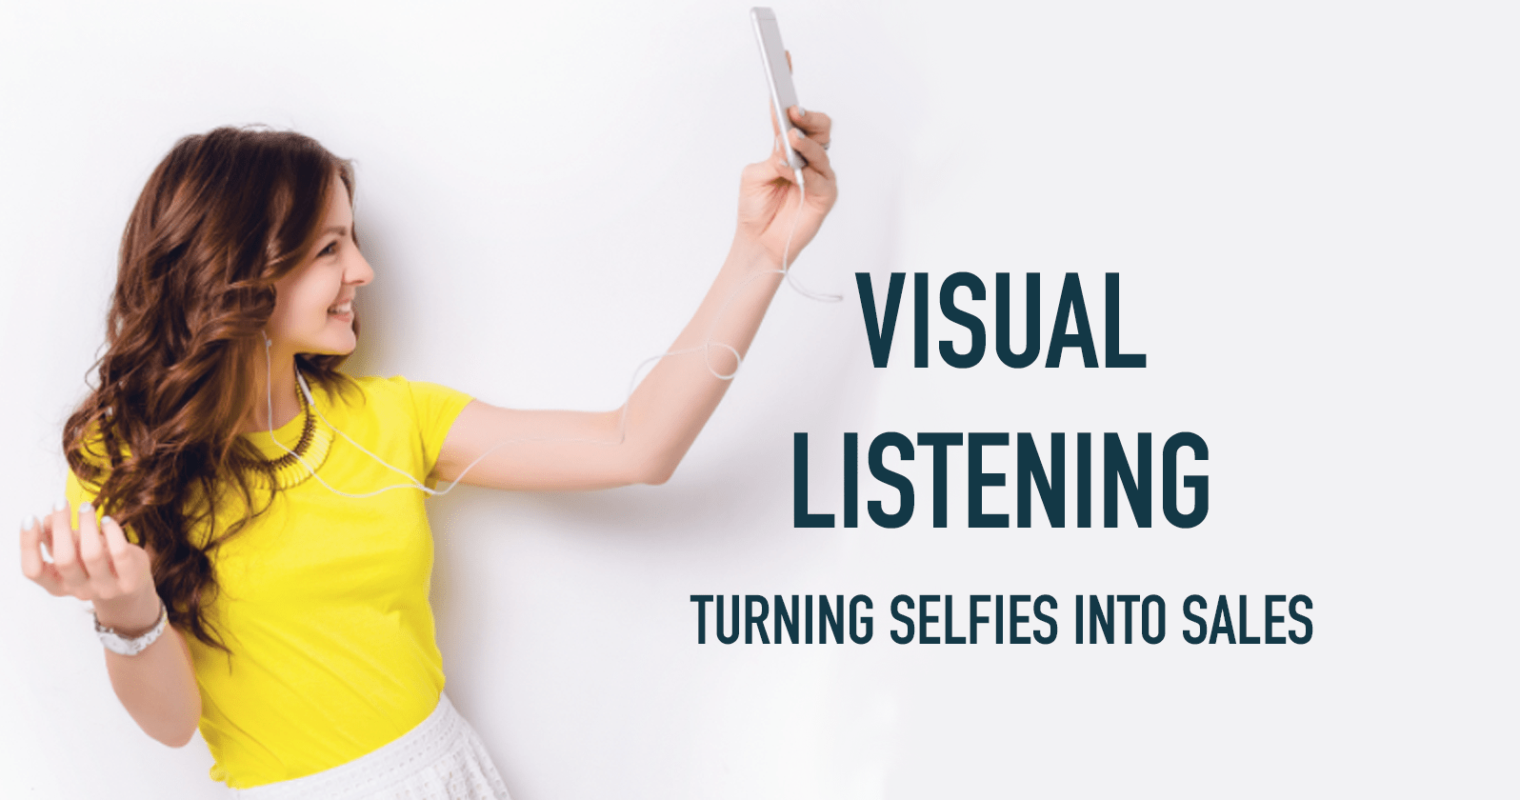 Visual Listening: How to Turn Selfies Into Sales